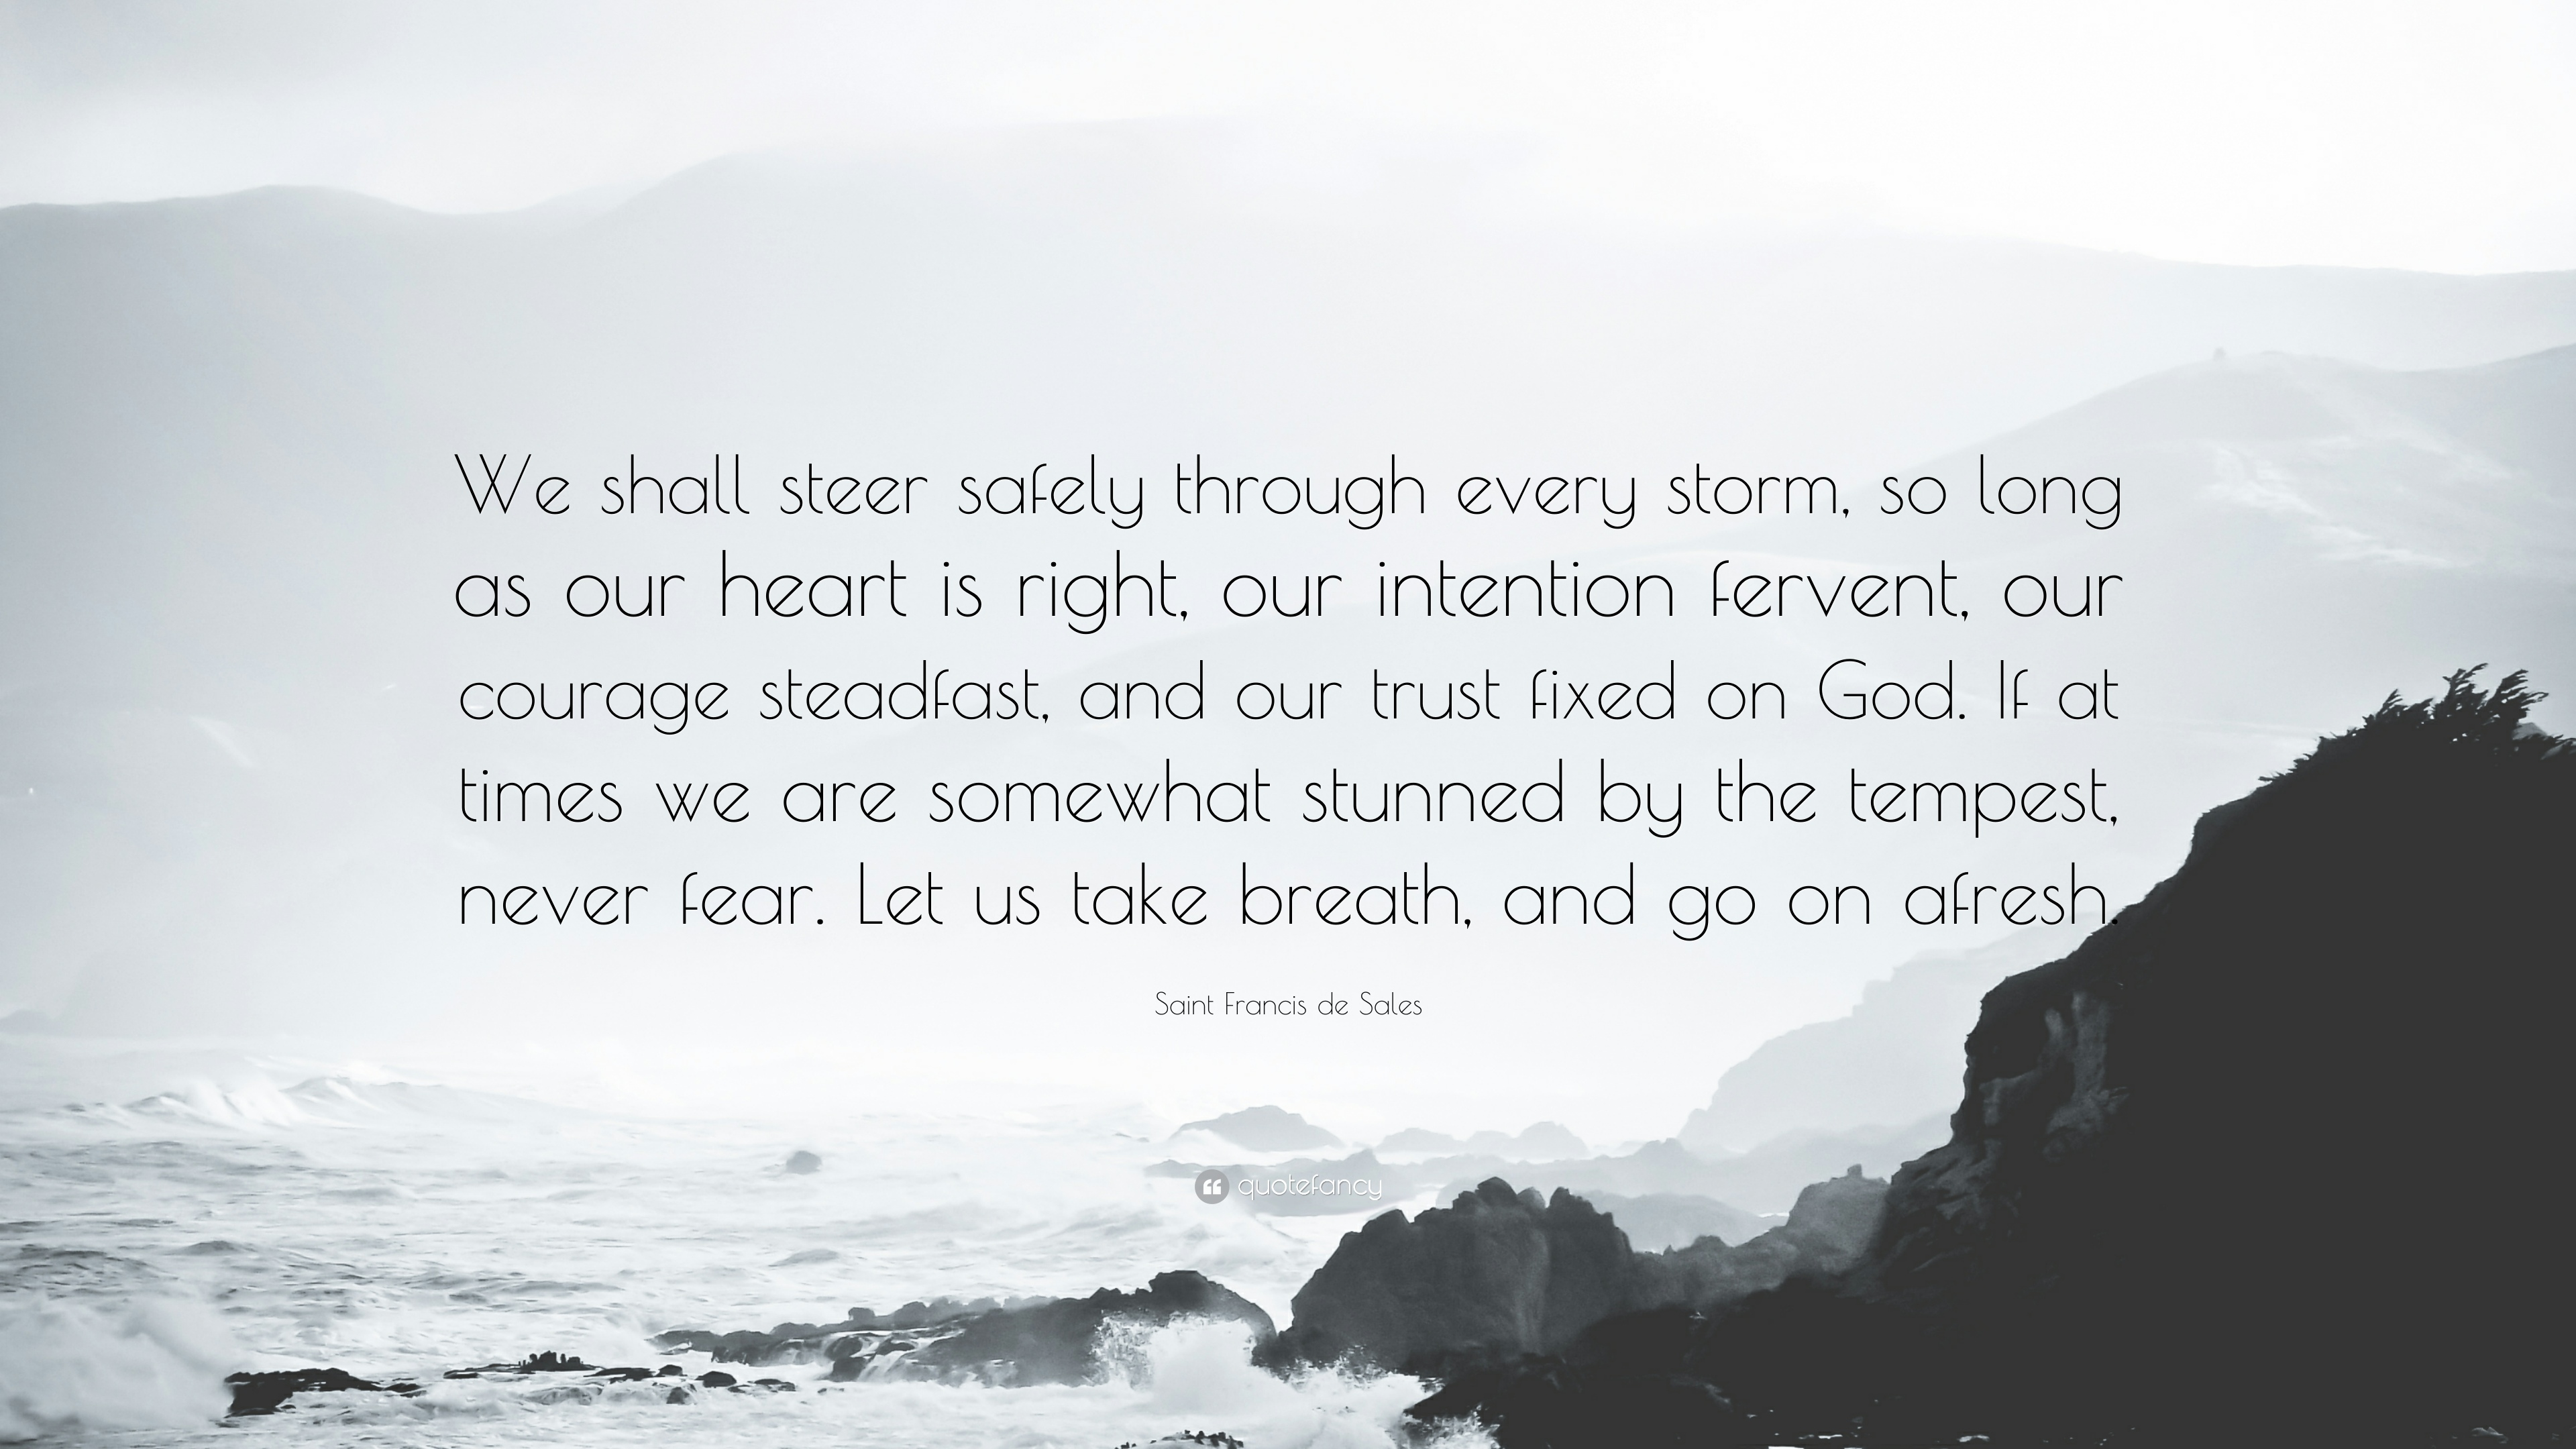 saint francis de sales quote we shall steer safely through every